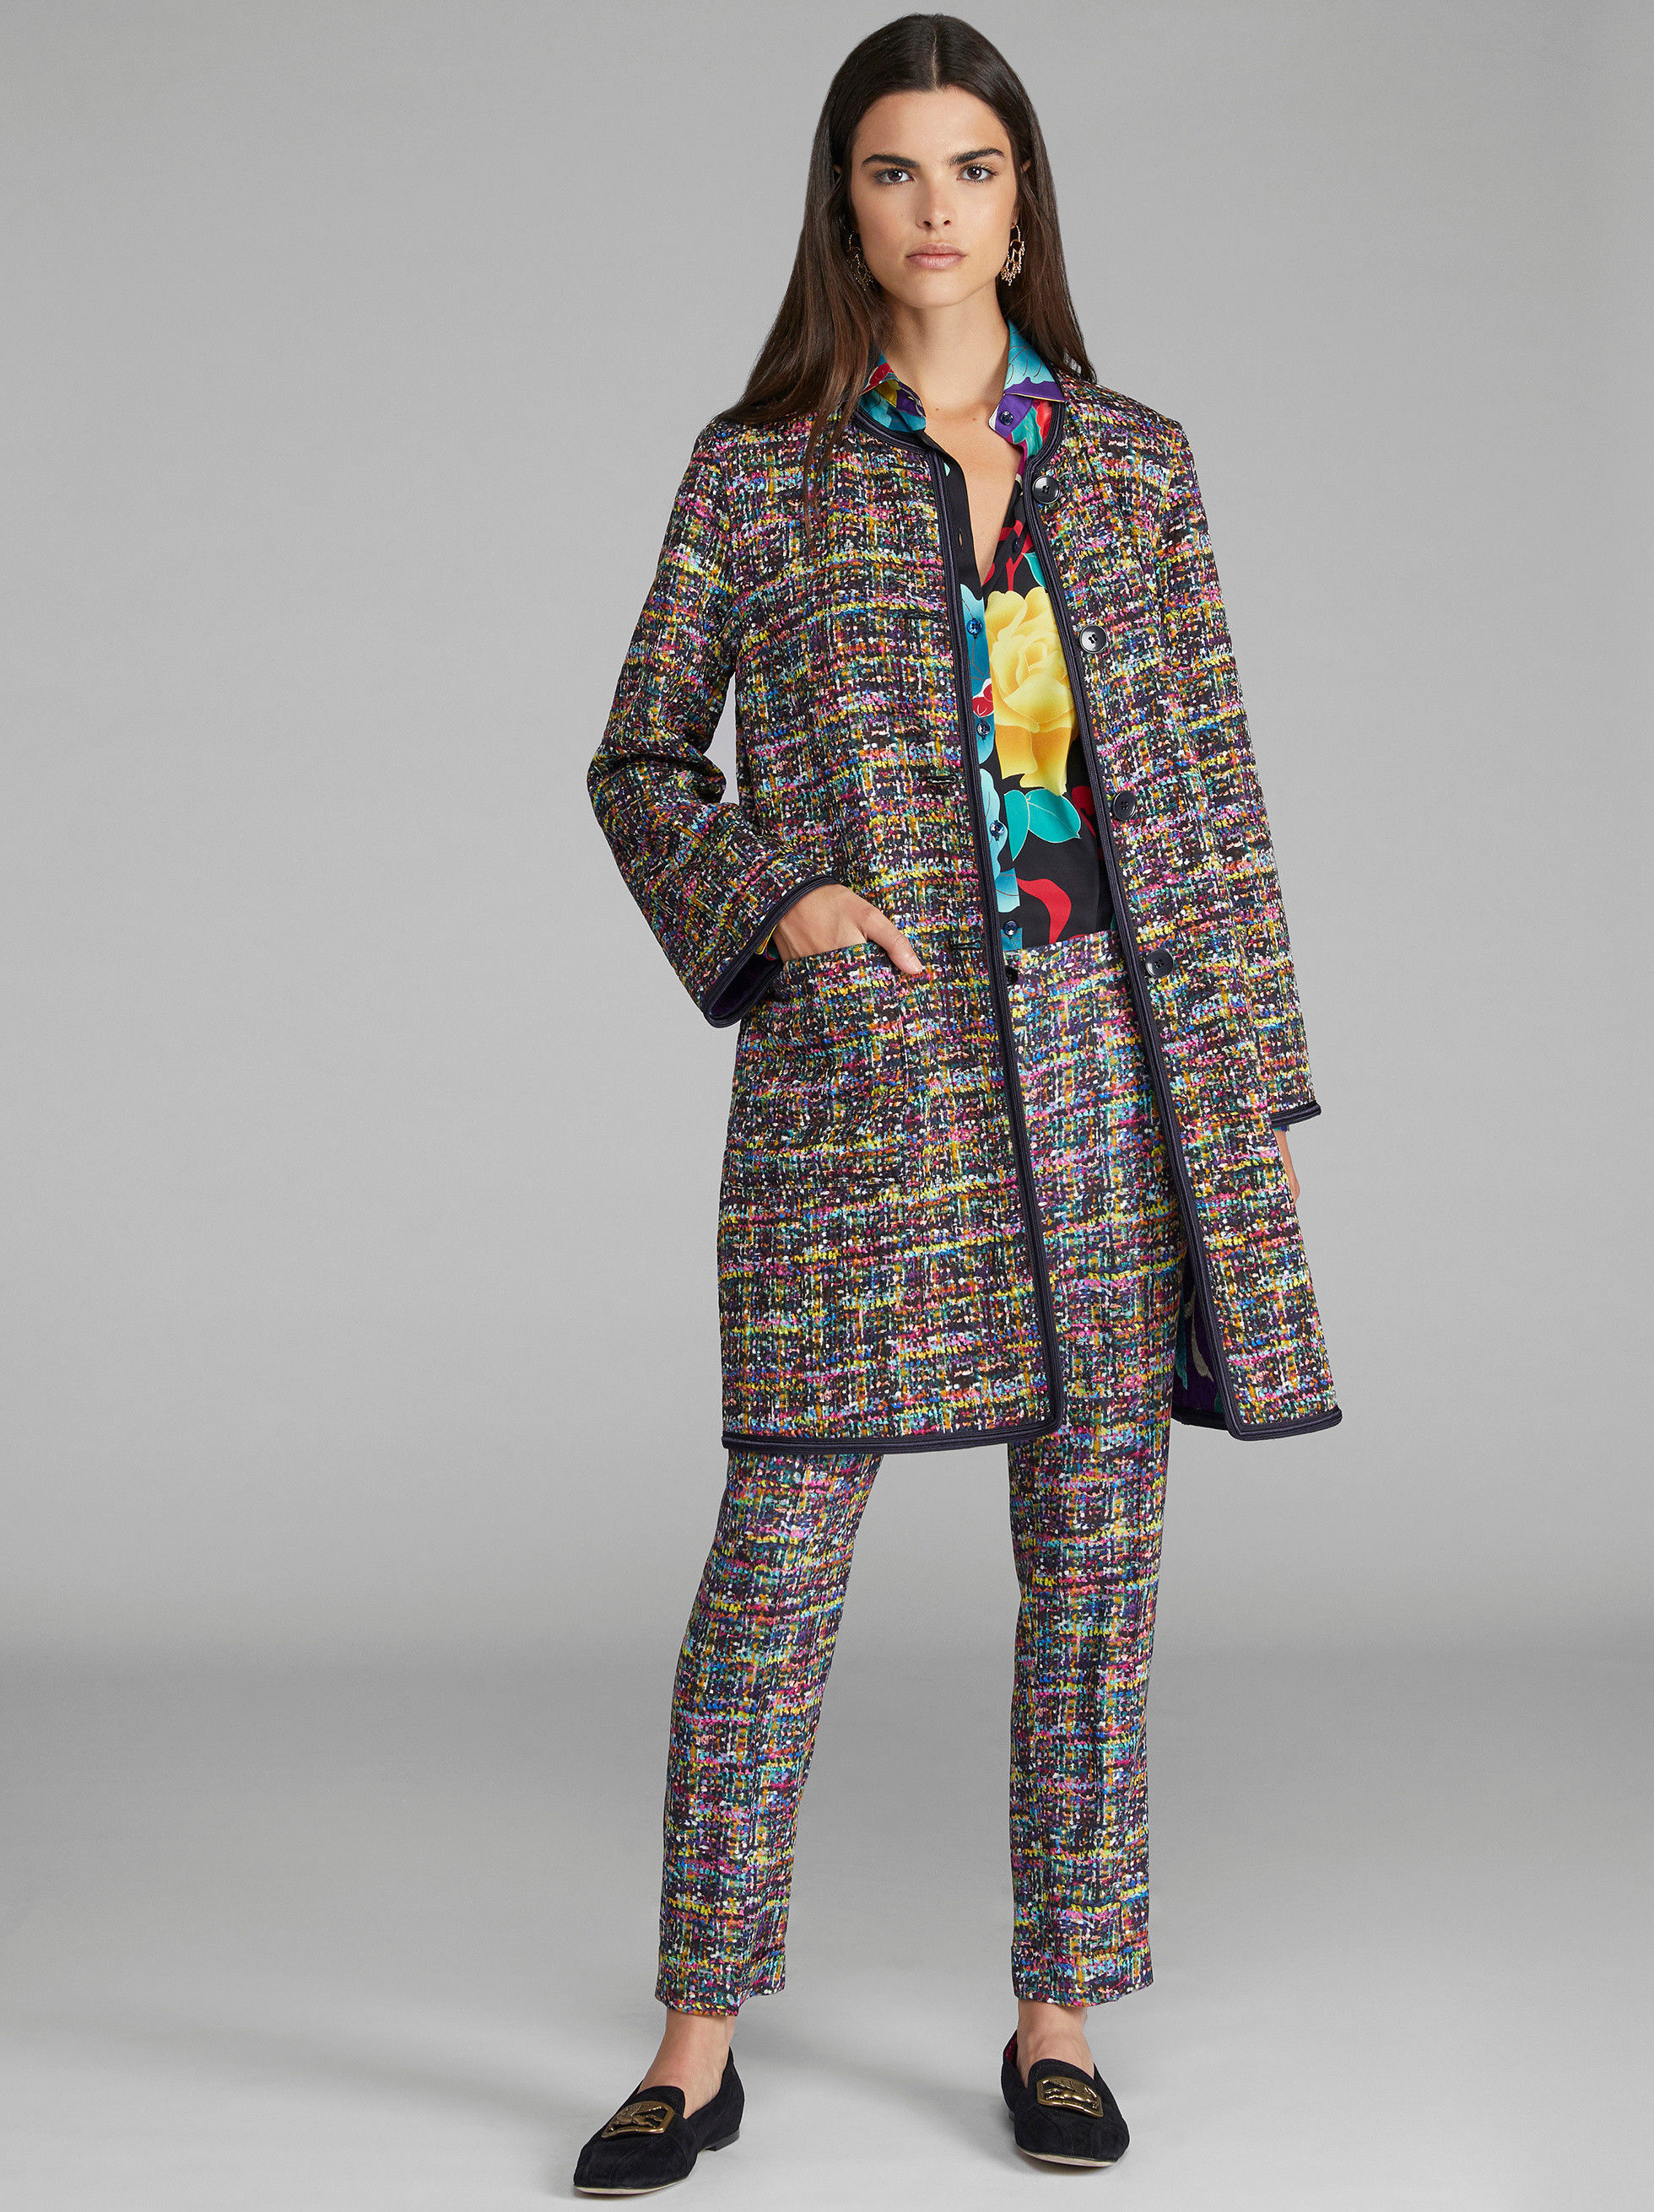 DOUBLE-SIDED MATELASSÉ COAT